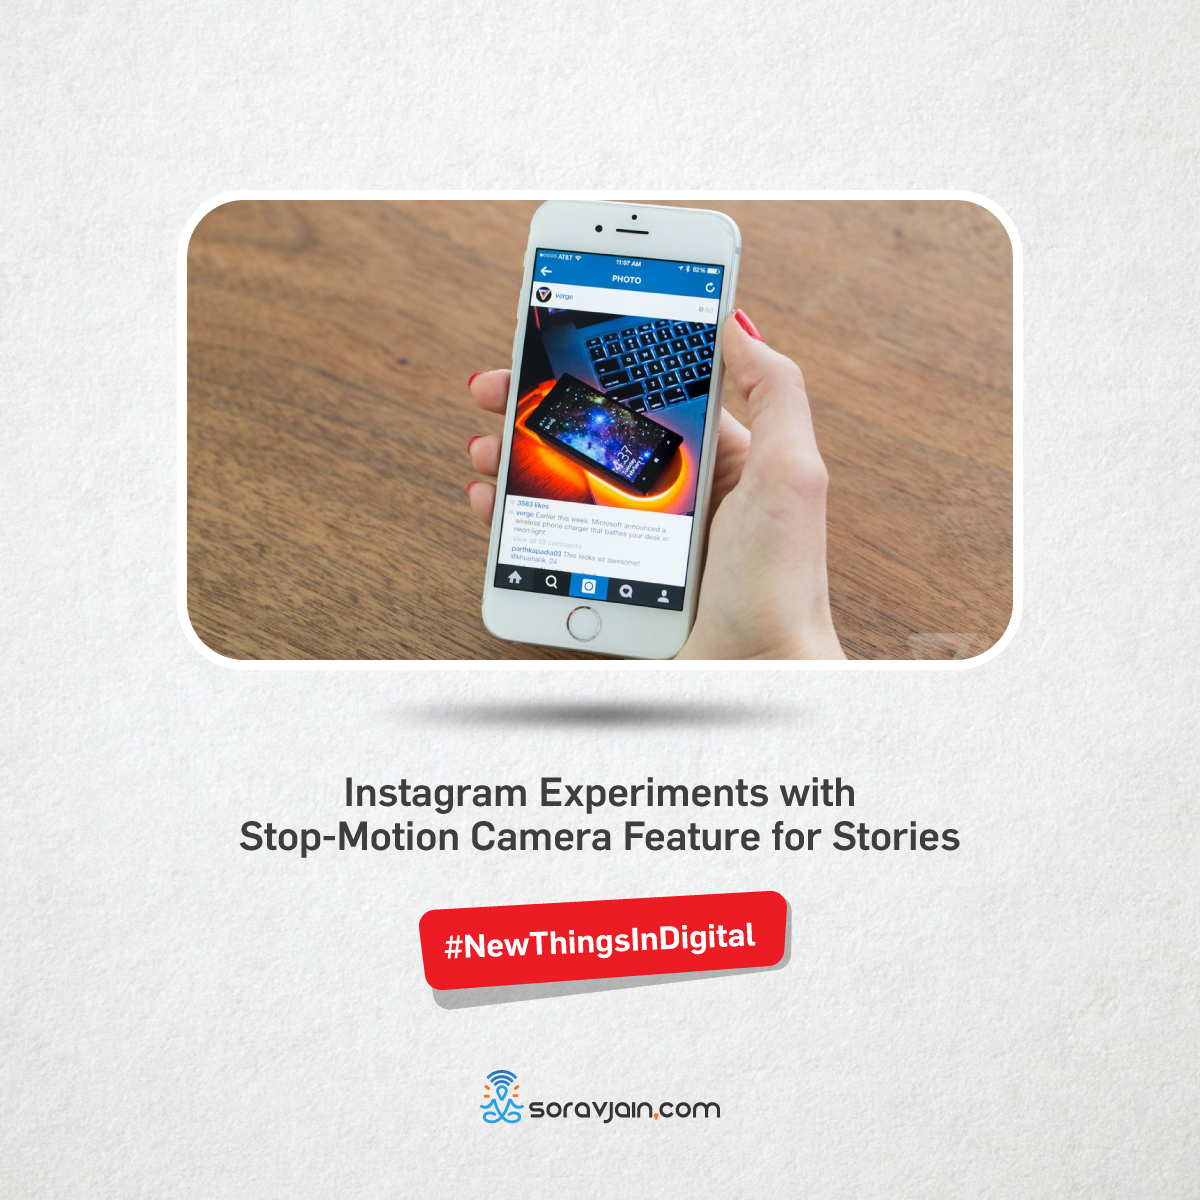 Instagram Experiments with Stop-Motion Camera Feature for Stories